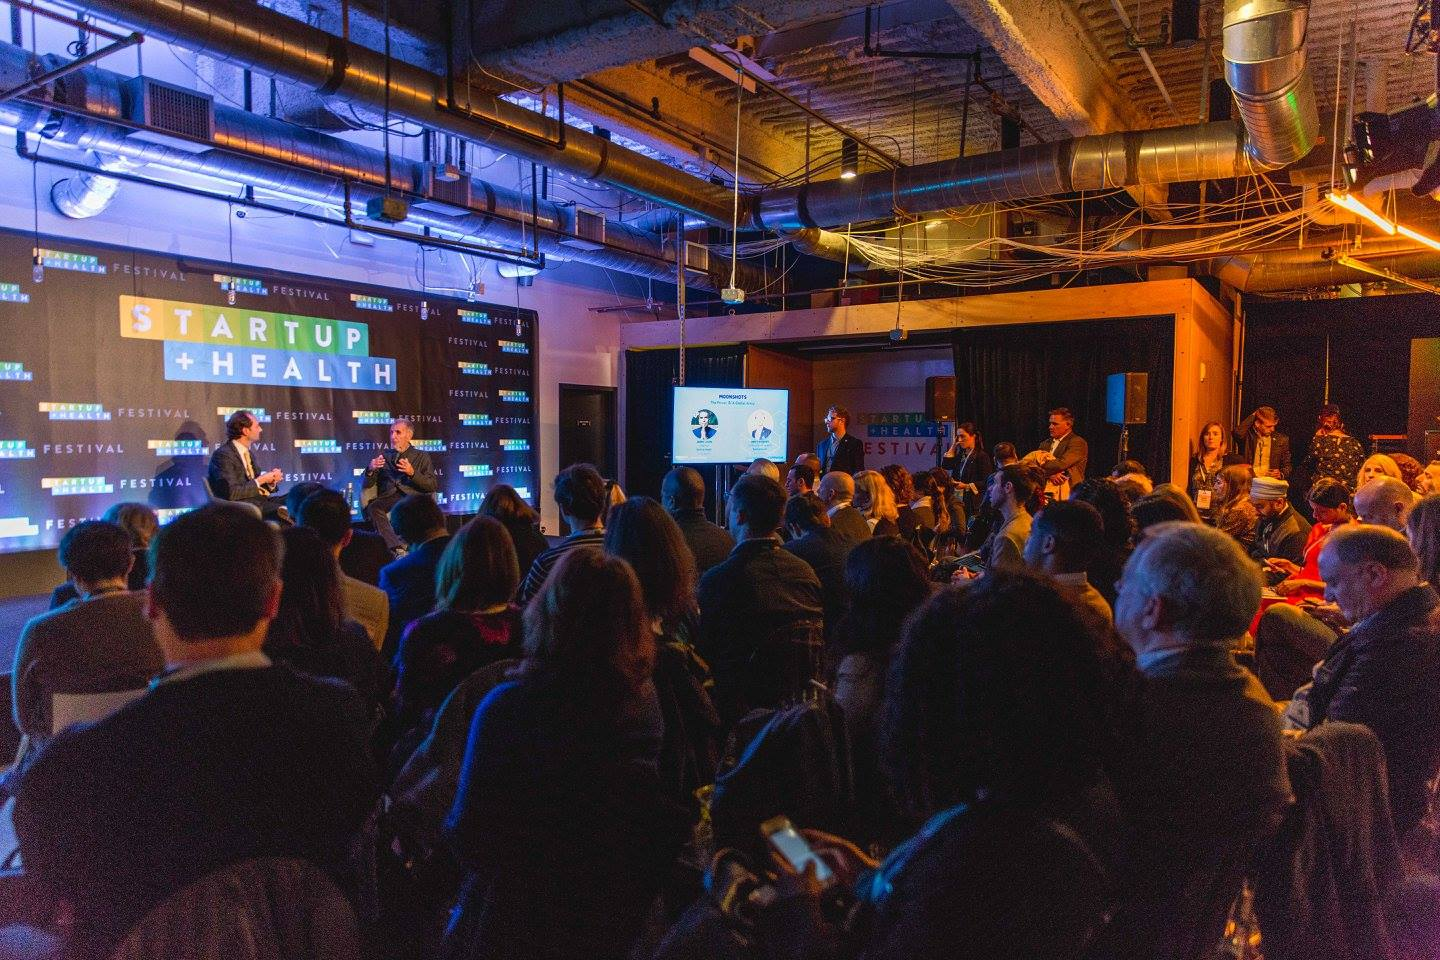 StartUp Health Broadcasts Annual Festival with Wirecast